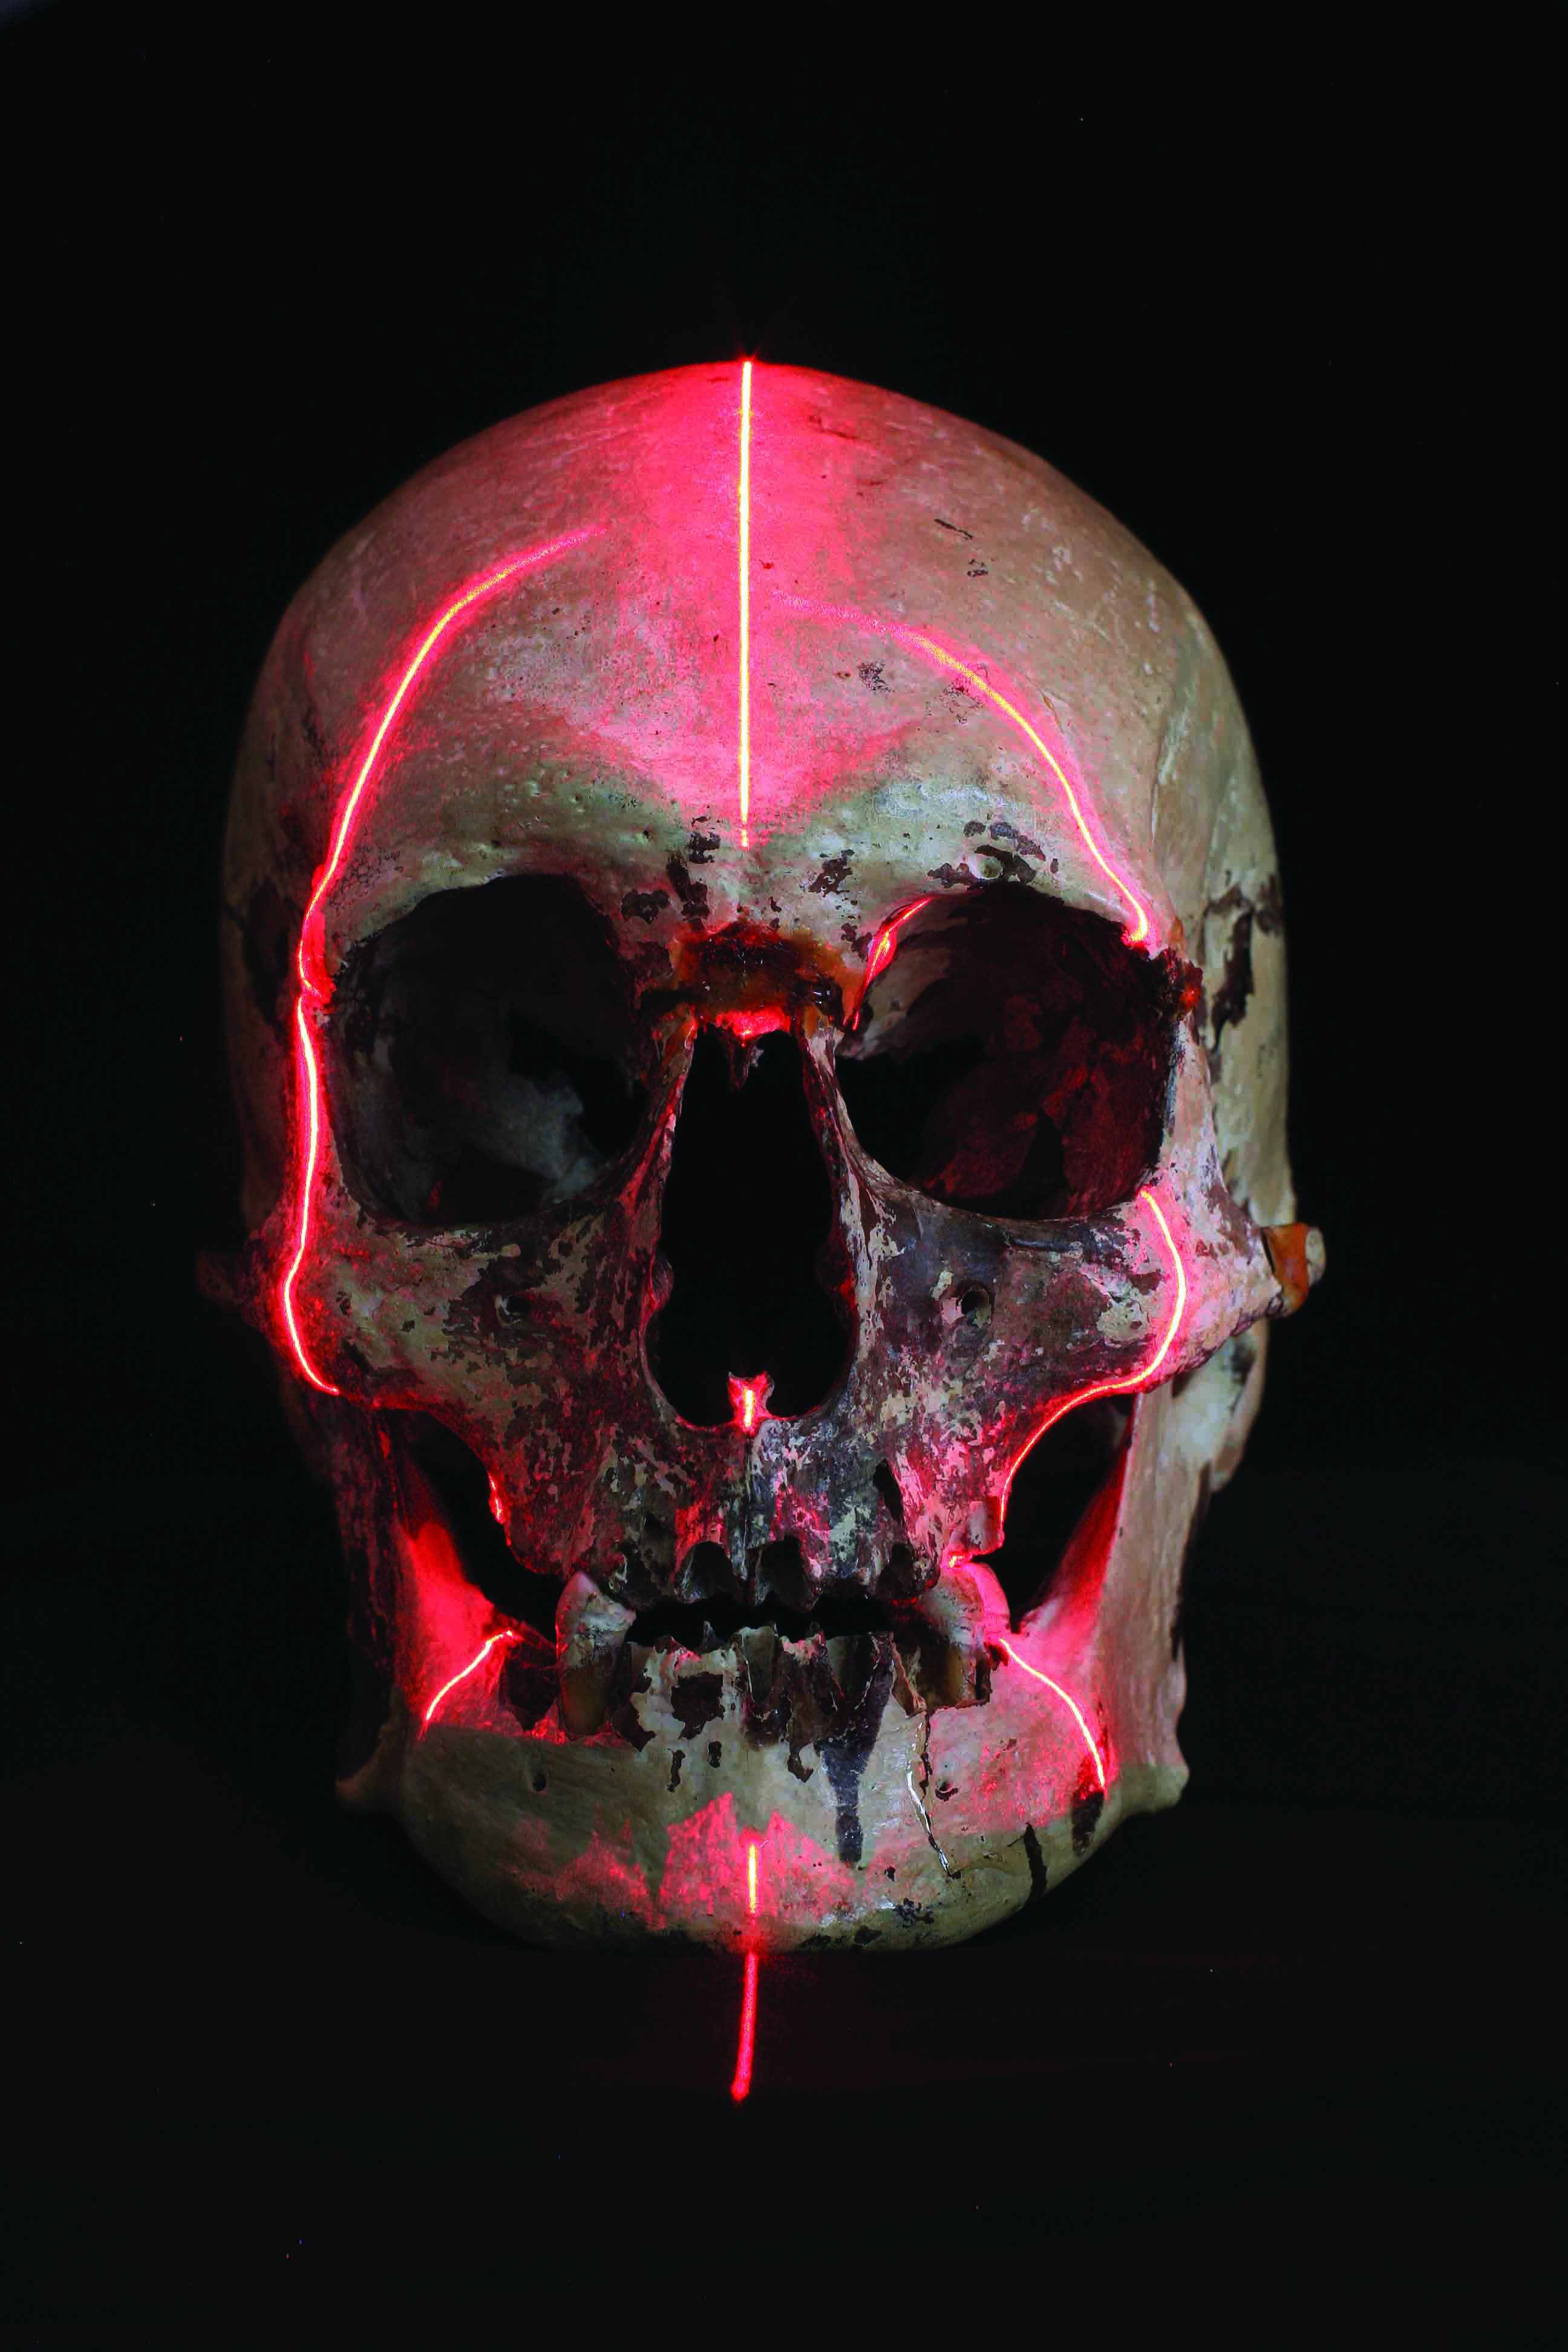 The 'Baxter skull' with CT scan lines.